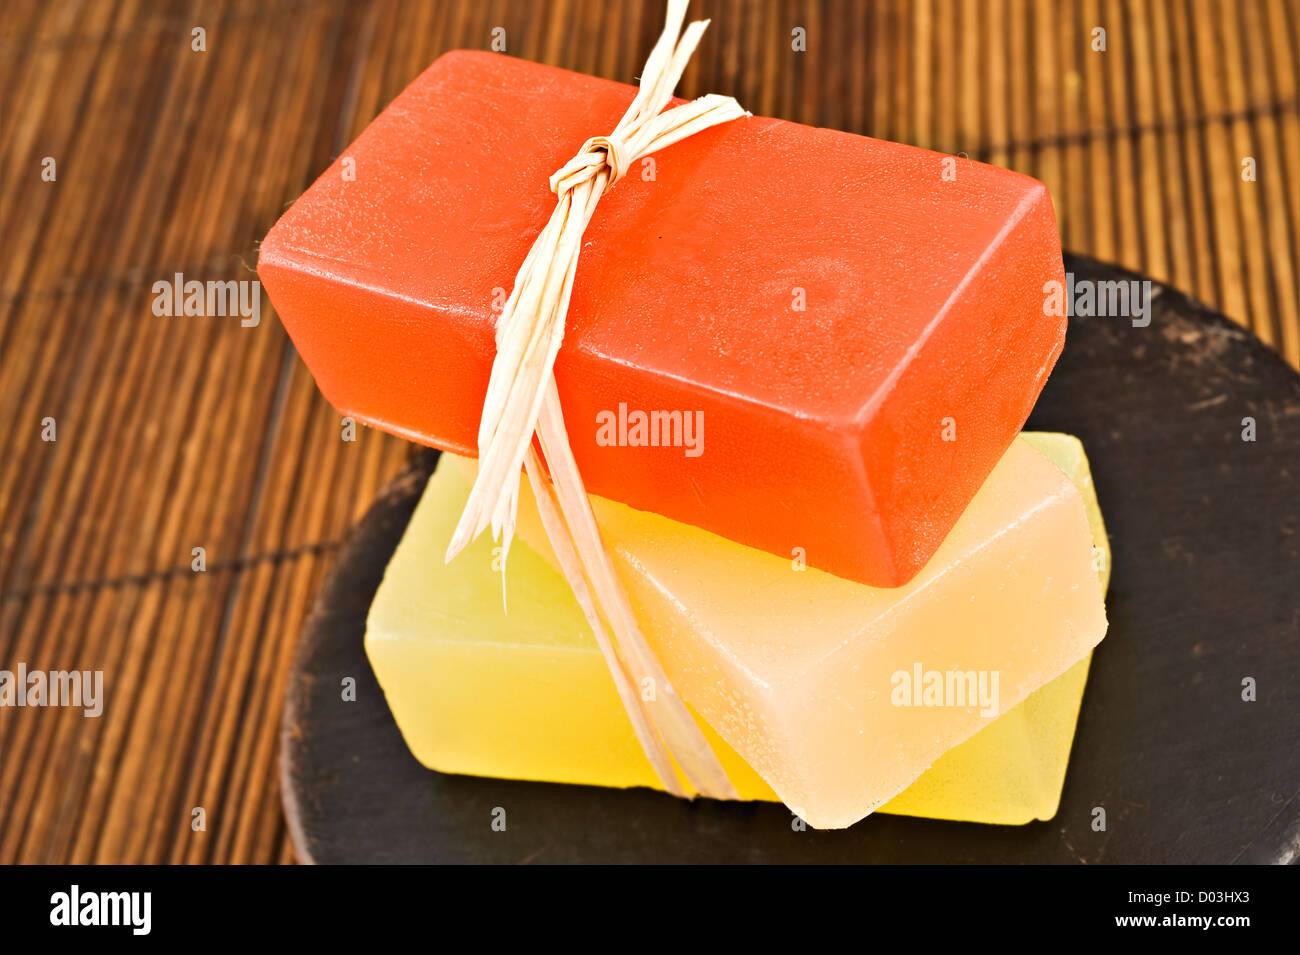 Three bars of organic glycerin soap in a spa. - Stock Image